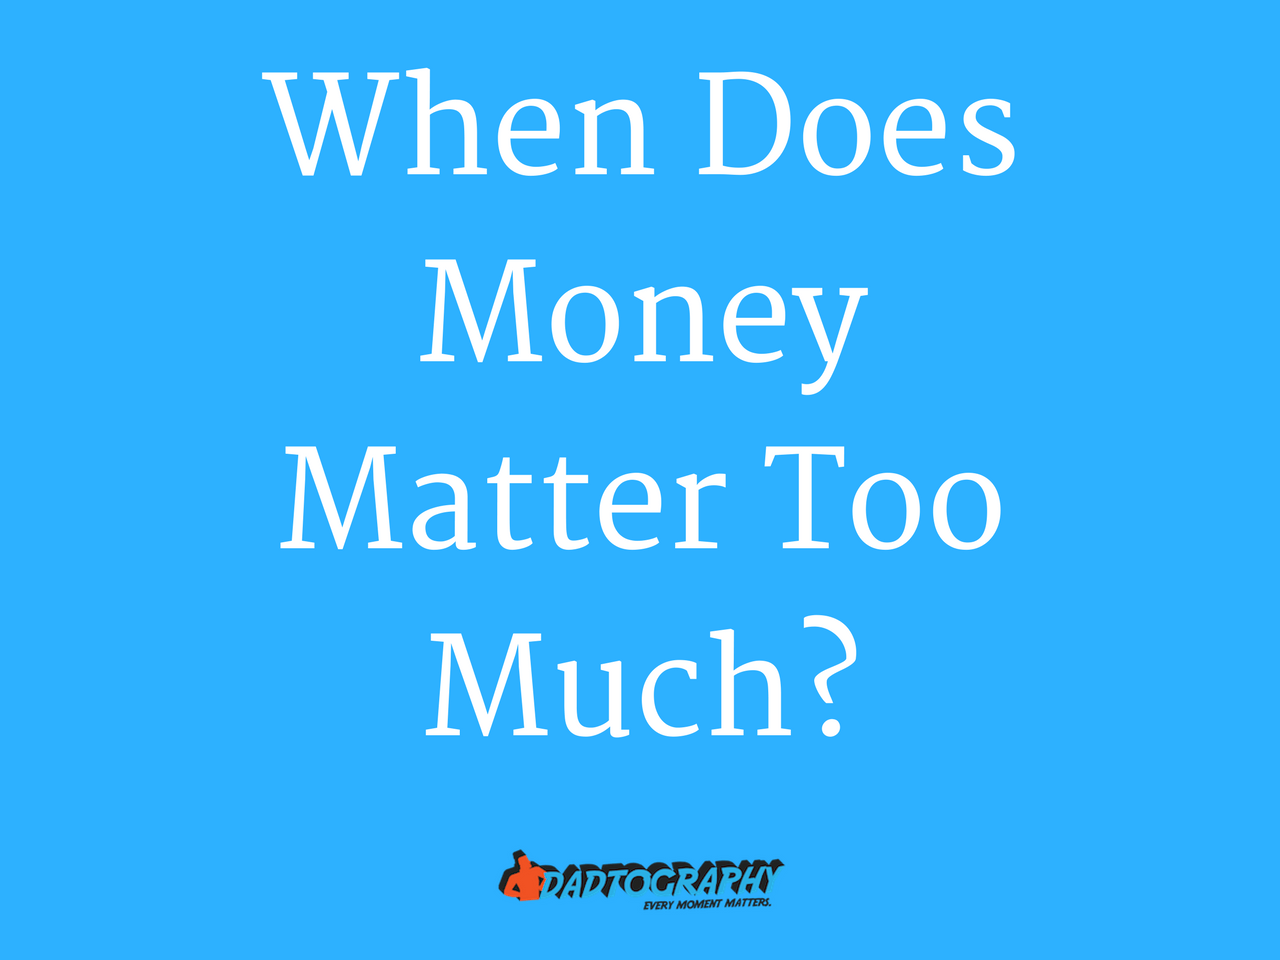 When Does Money Matter Too Much?